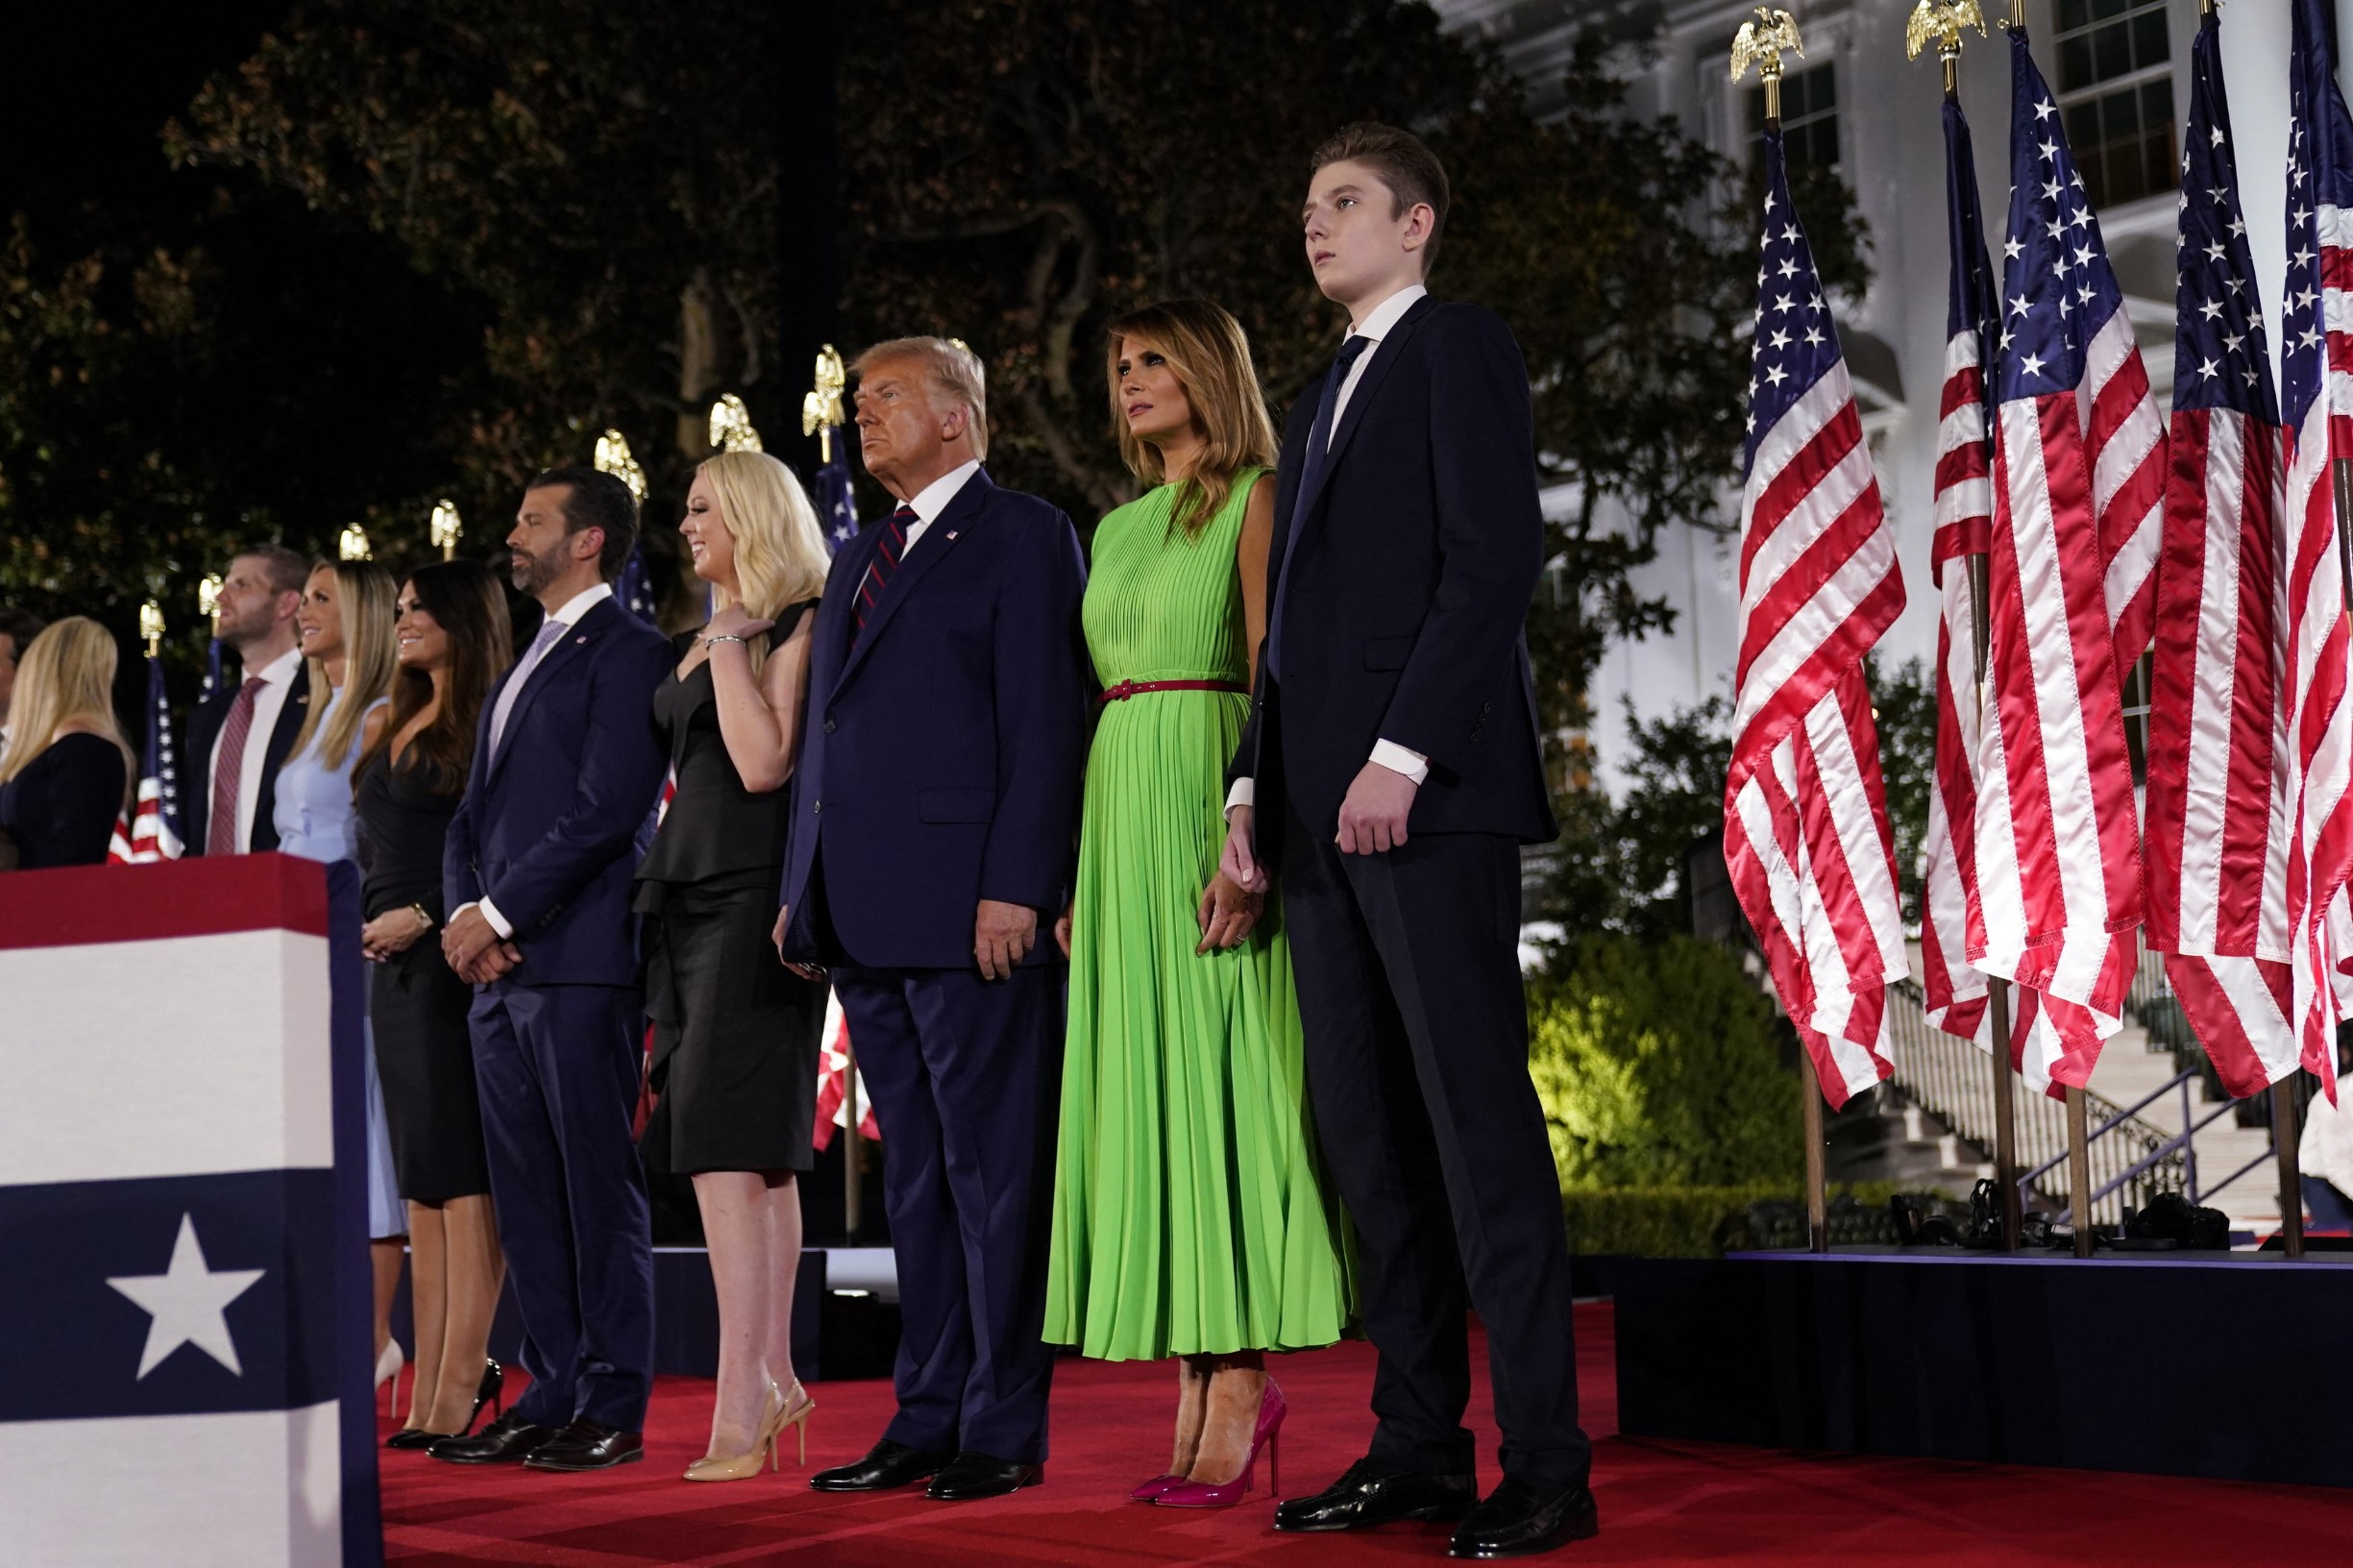 August 27, 2020 - Washington, DC, United States: Ivanka Trump, Eric Trump, Lara Trump, Kimberly Guilfoyle, Donald Trump, Melania Trump, Barron Trump. U.S. President Donald Trump formally accepts the 2020 Republican presidential nomination during his Republican National Convention address from the South Lawn at the White House. (Erin Scott/Polaris) ///,Image: 555282673, License: Rights-managed, Restrictions: , Model Release: no, Credit line: Pool/ABACA / Abaca Press / Profimedia